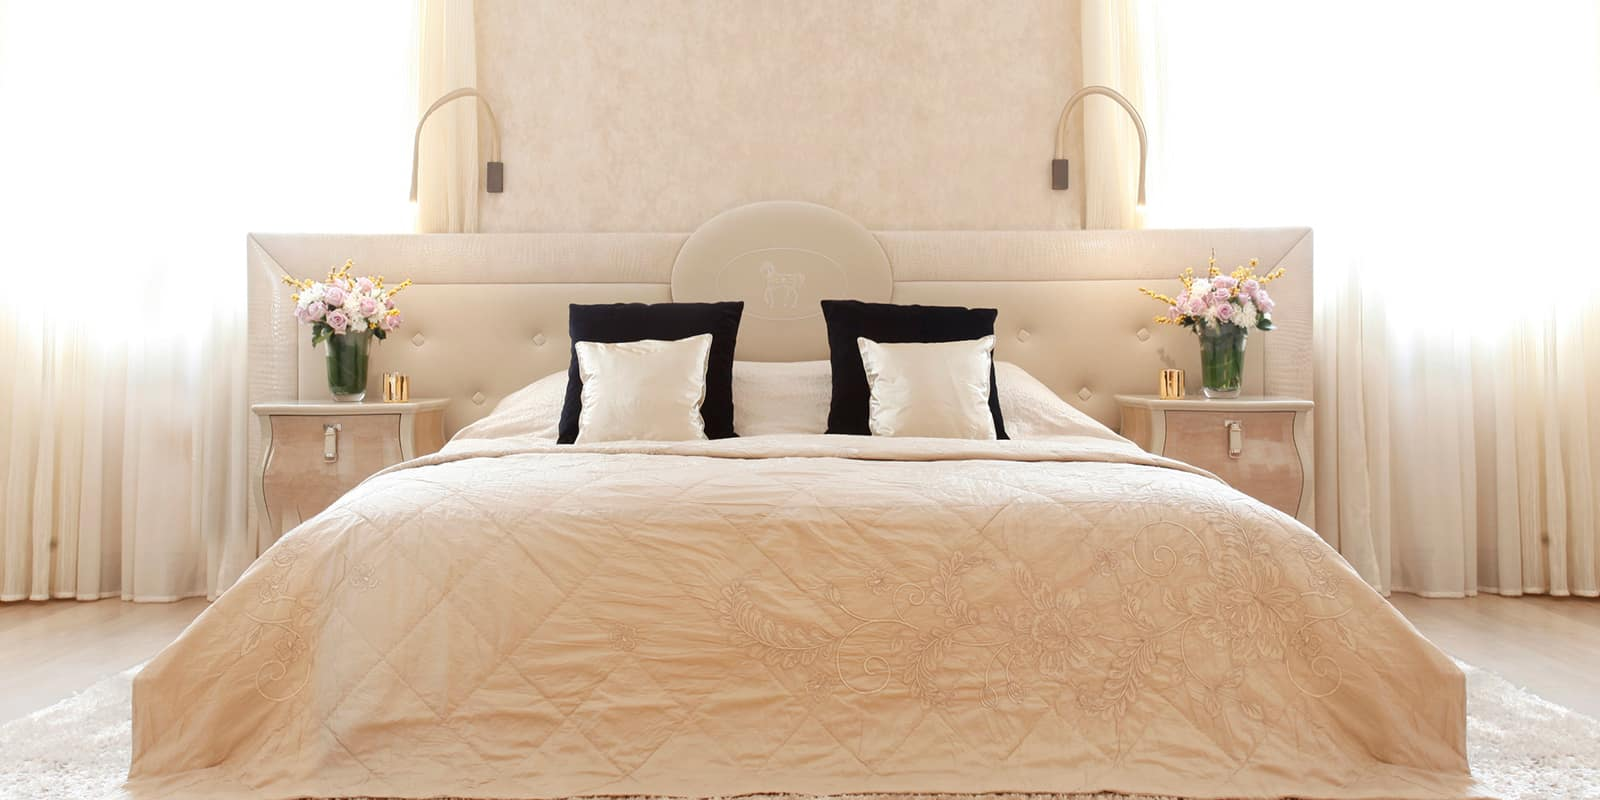 Large cream bedroom and bed